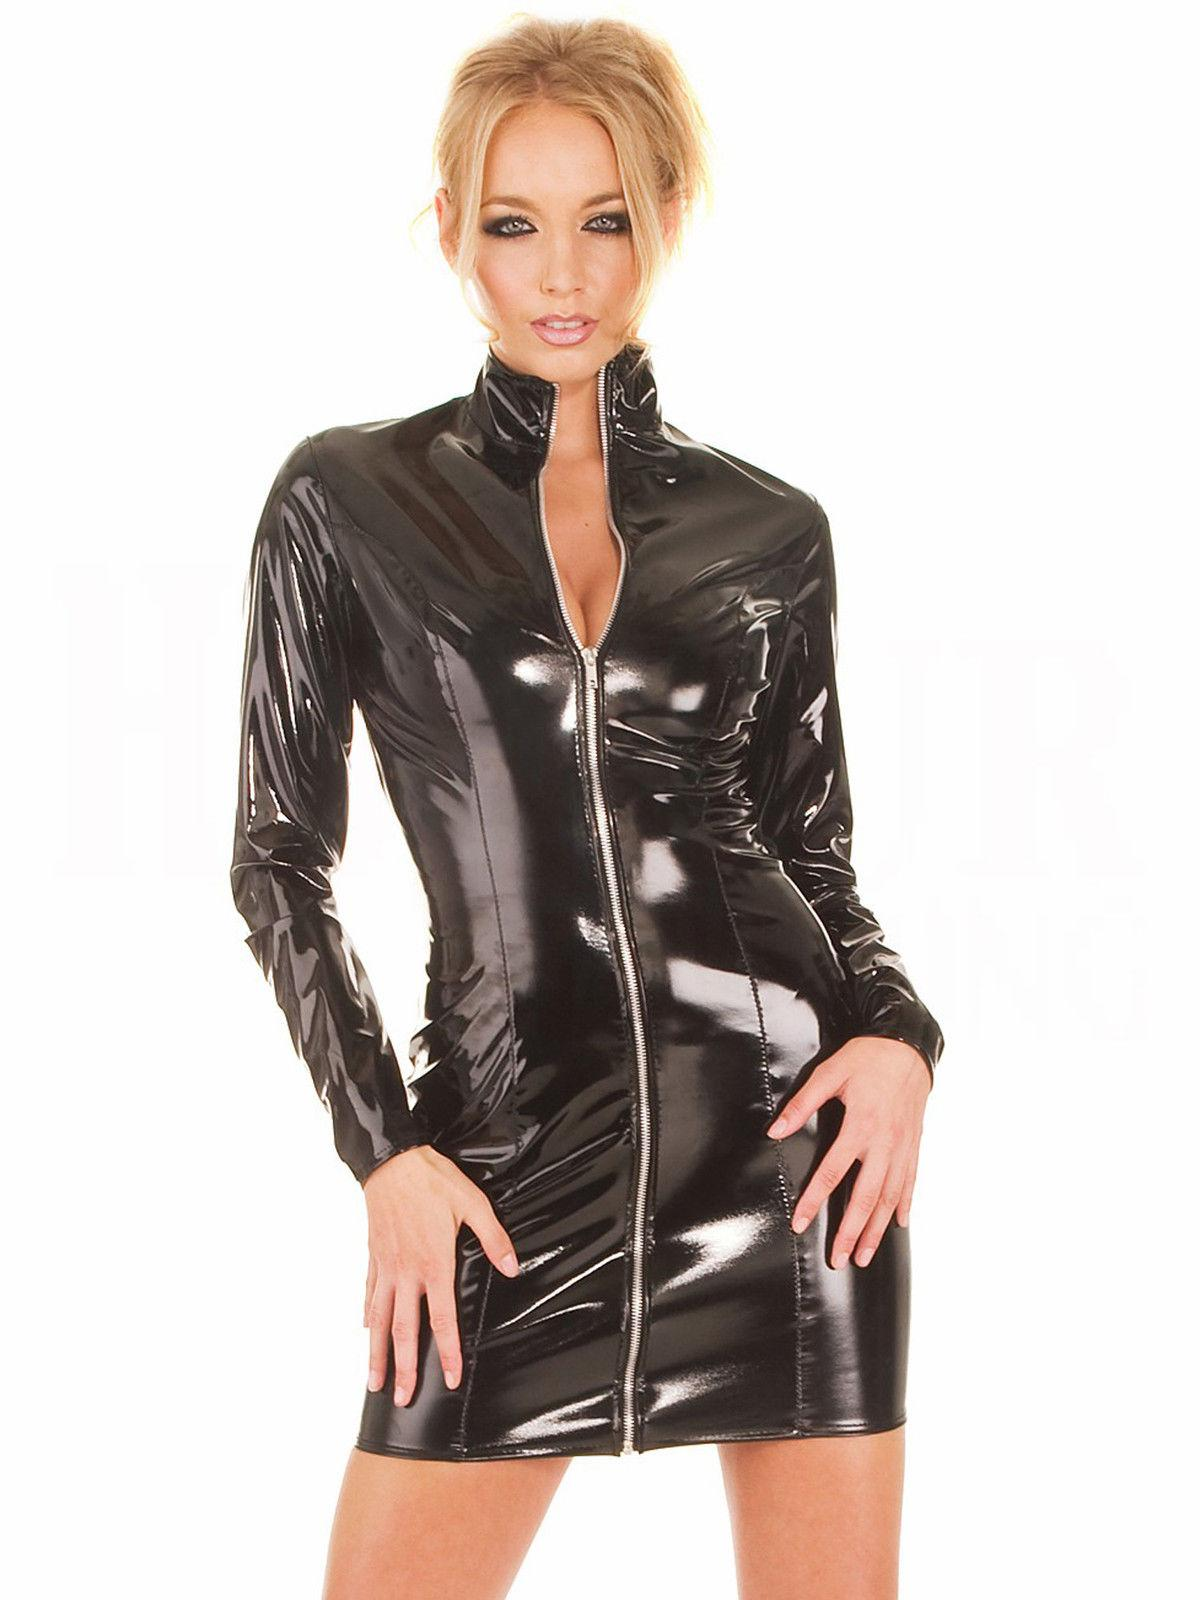 Mini Dress Latex Leather Skirt PVC Long Sleeve Costume Sexy Lingerie Catsuit Leather Bodysuit Sexy Game Jumpsuit Uniforms Dancing Clothing